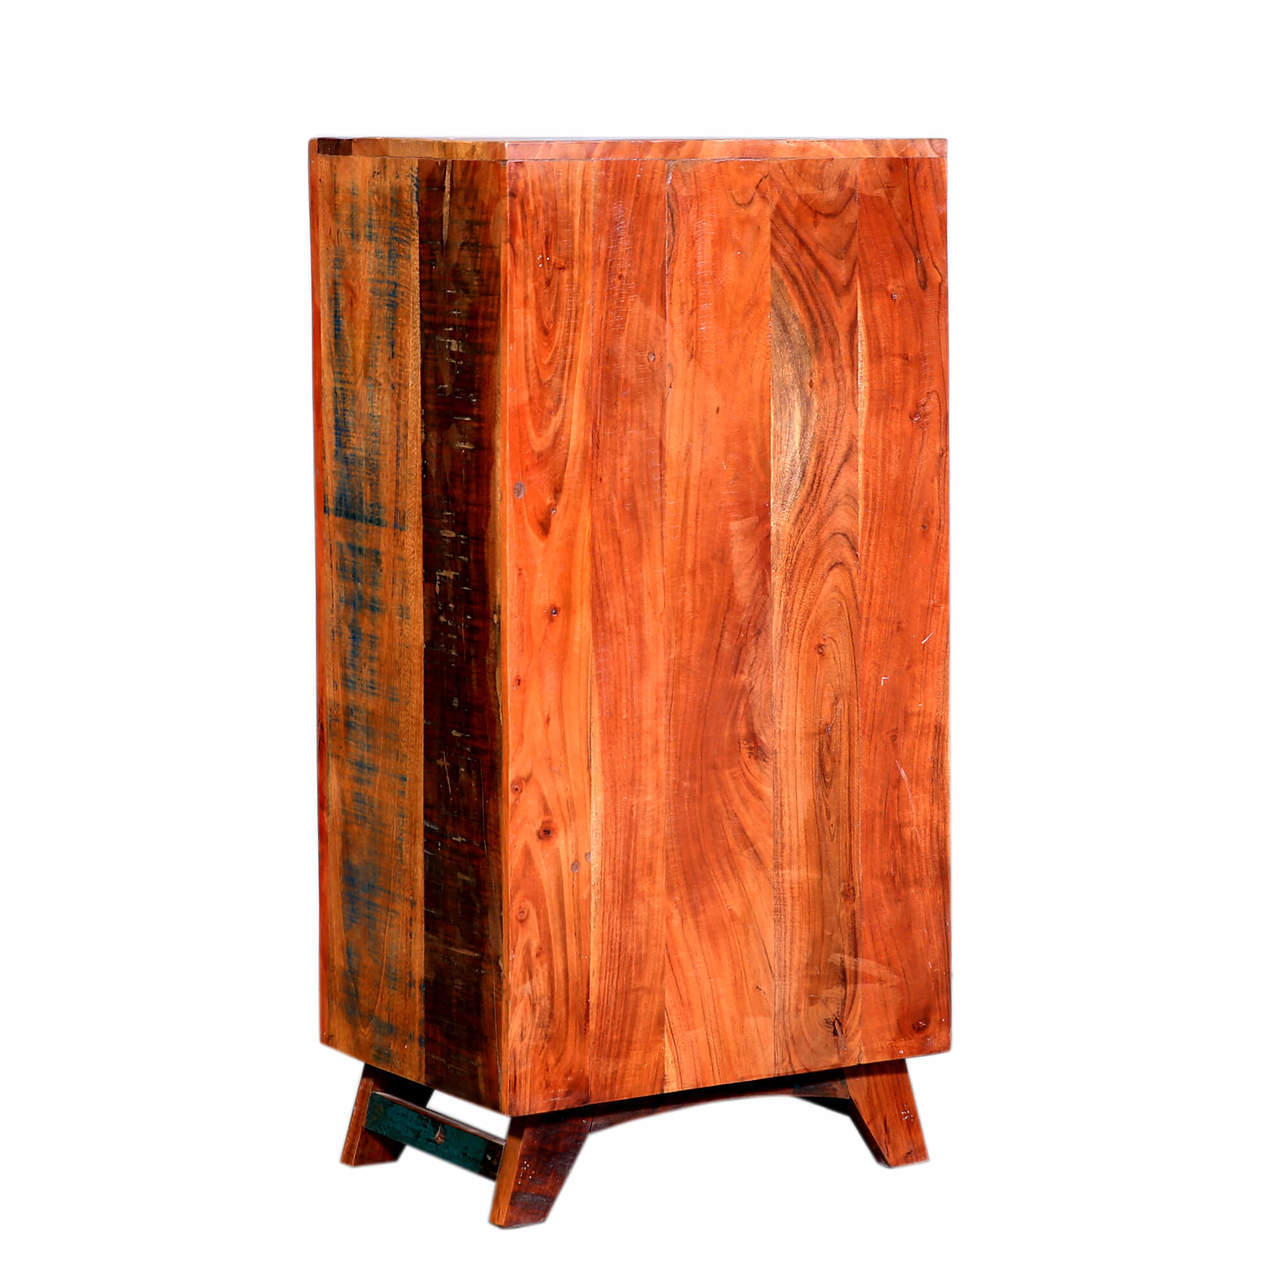 Amityville Rustic Handcrafted 5 Drawers Reclaimed Wood Dresser Pertaining To Amityville Wood Sideboards (View 24 of 30)